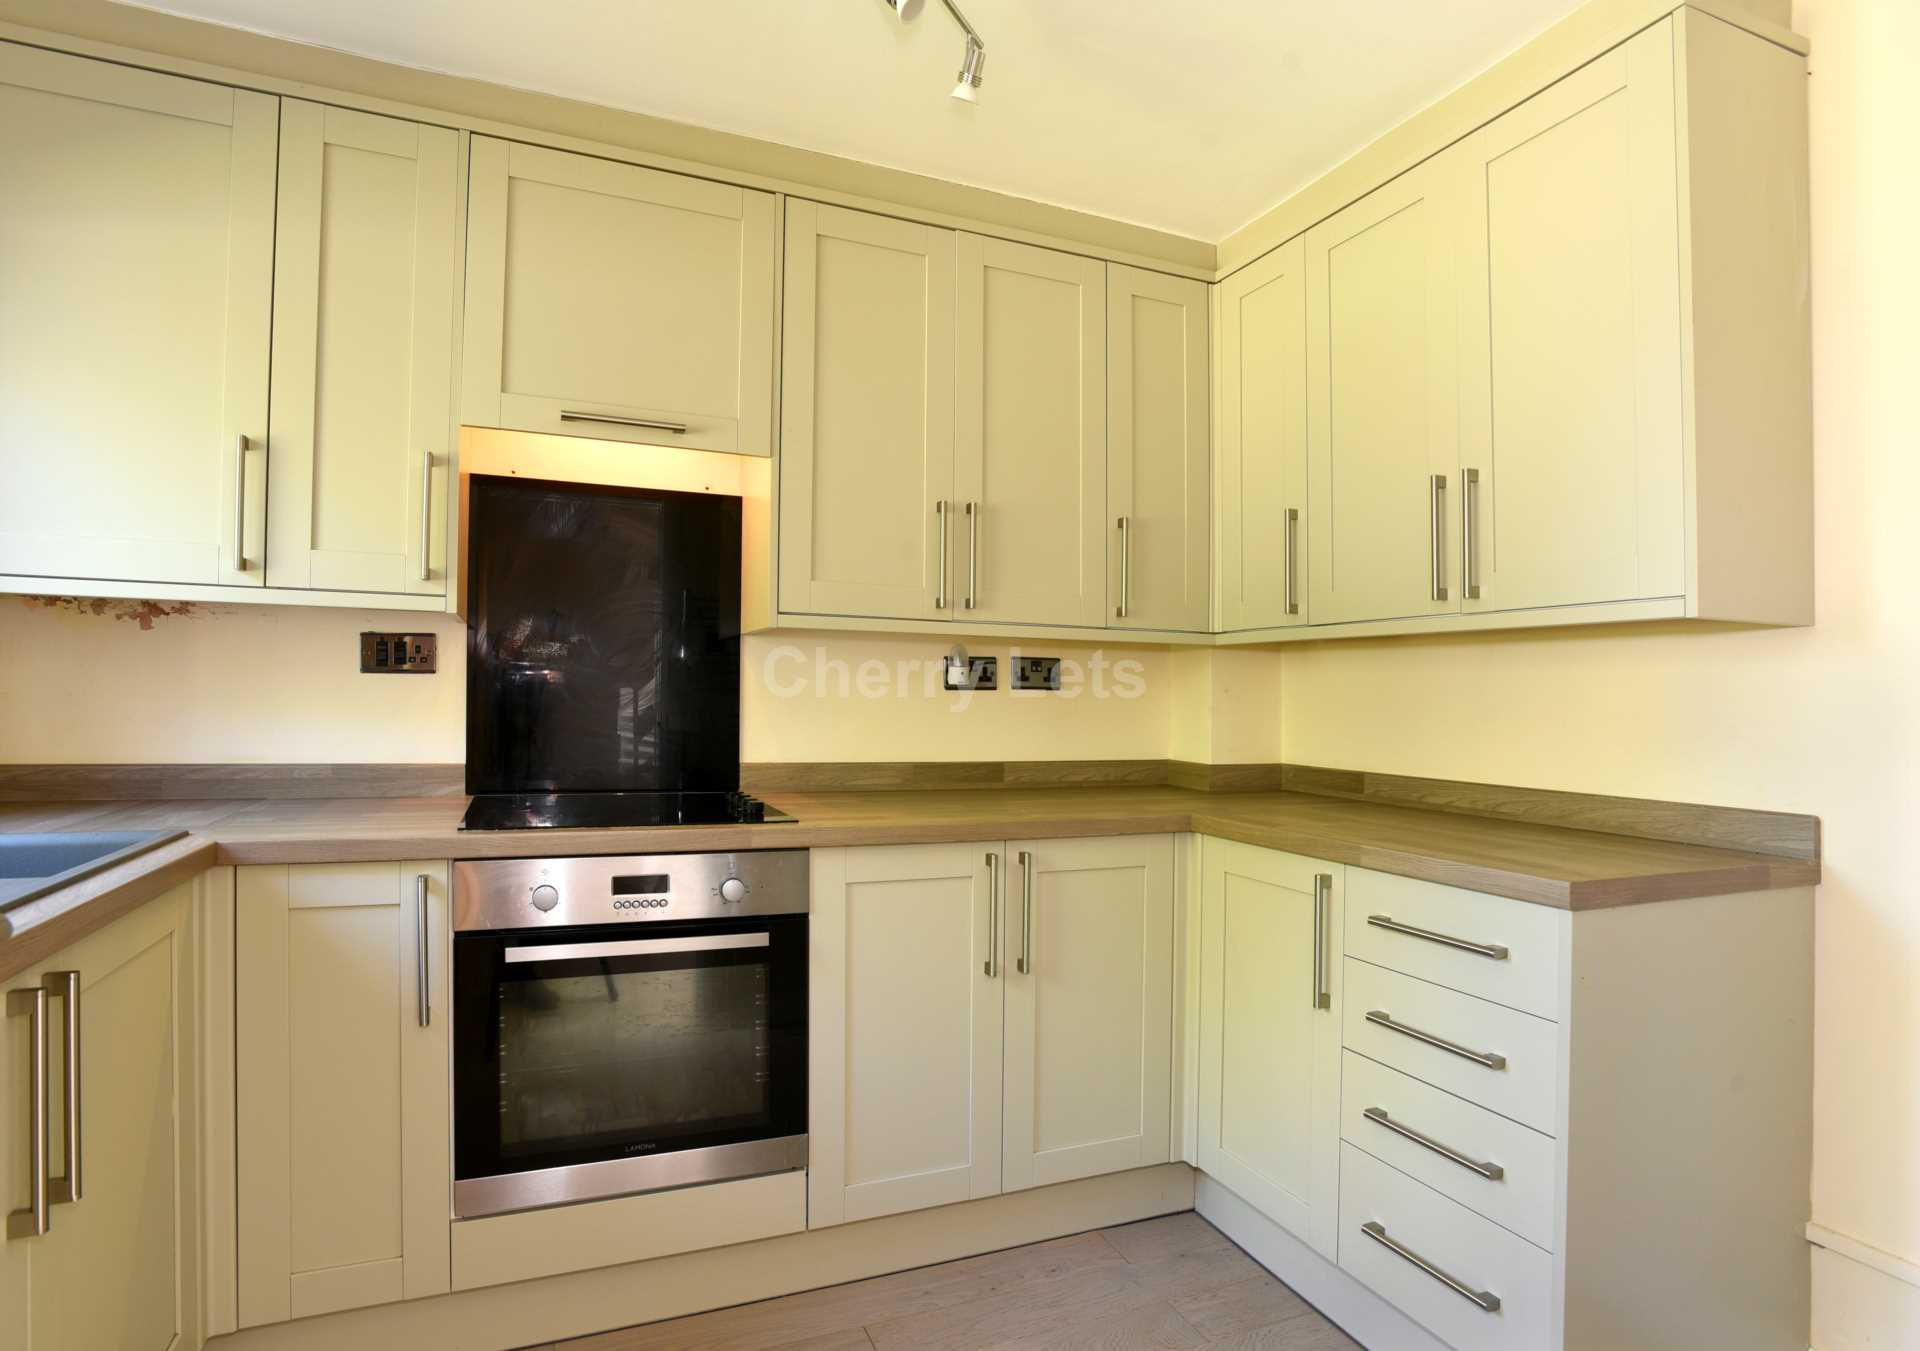 3 bed terraced house to rent in Keytes Close, Adderbury, OX17  - Property Image 5